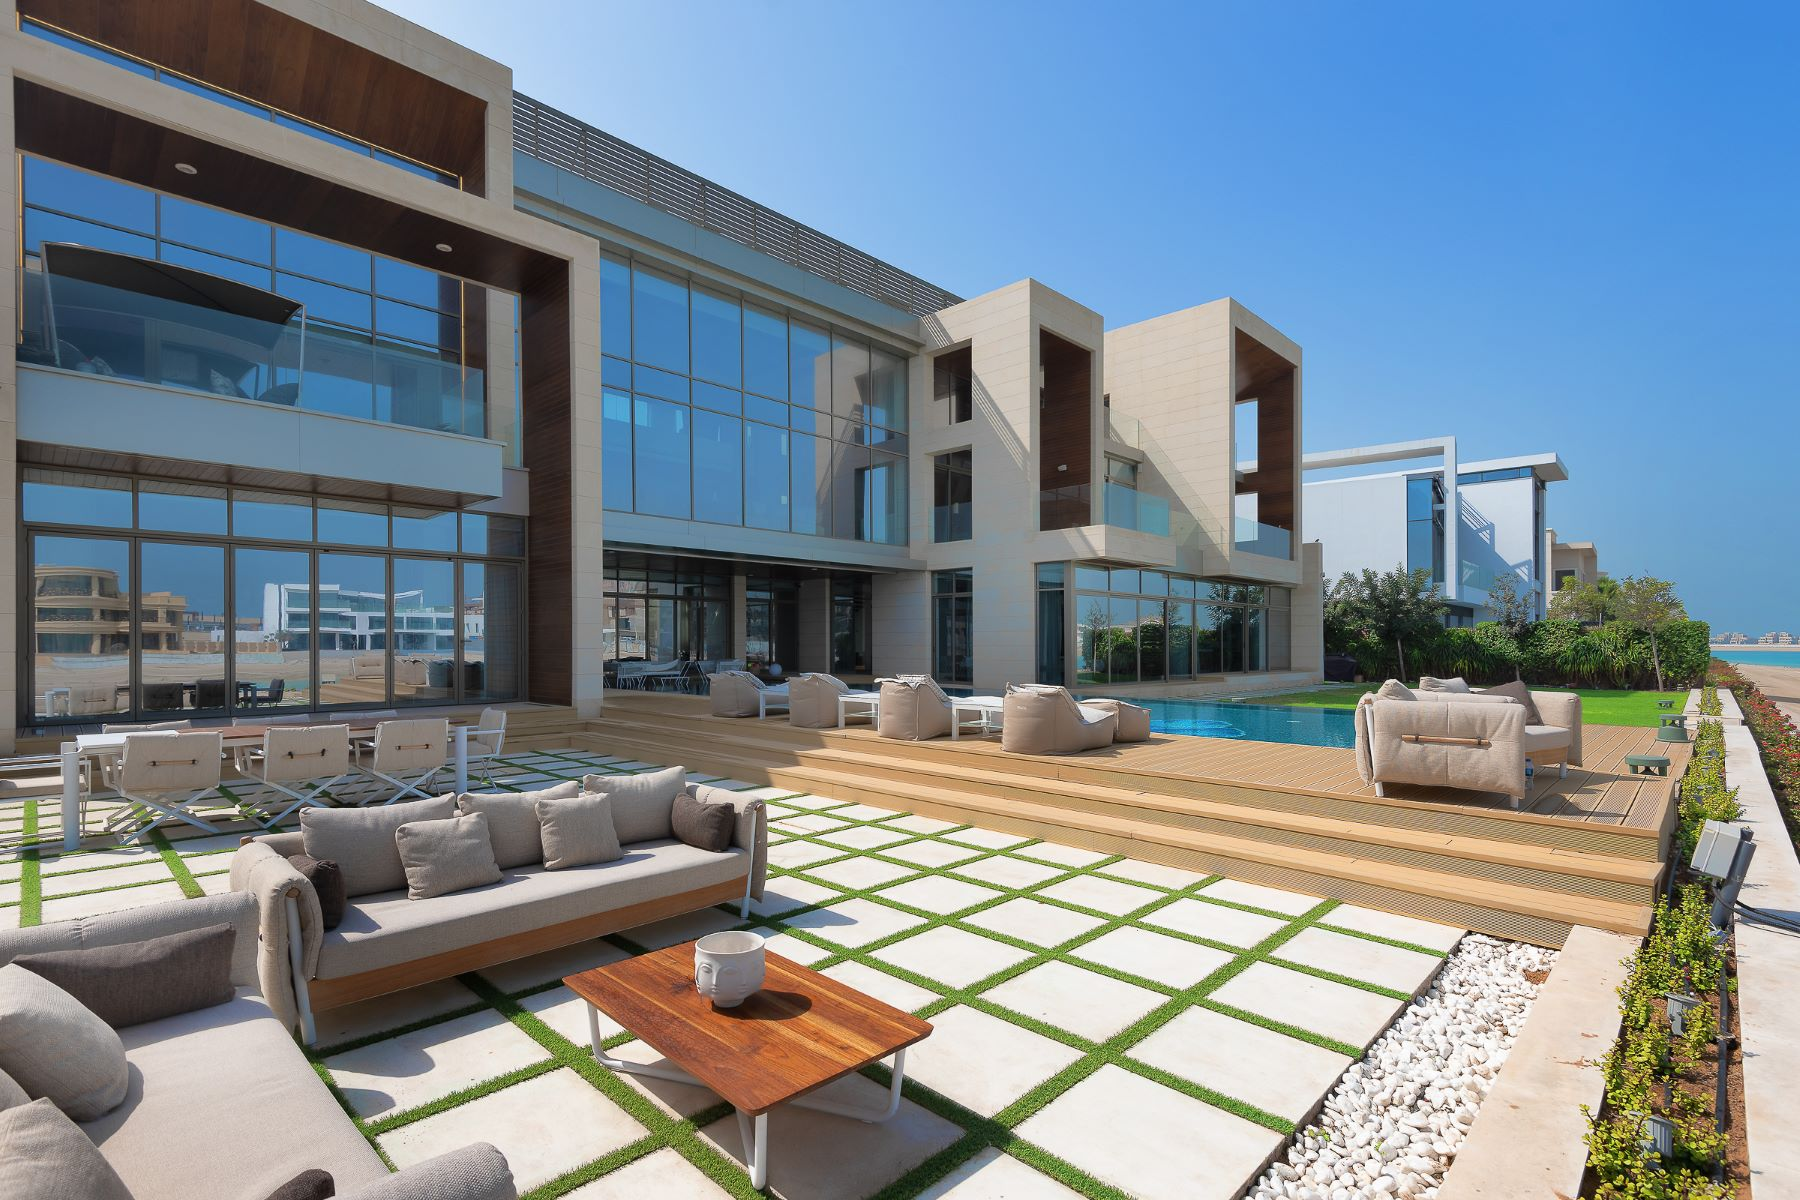 Property for Sale at Custom Made Modern Style Signature Villa Dubai, Dubai United Arab Emirates